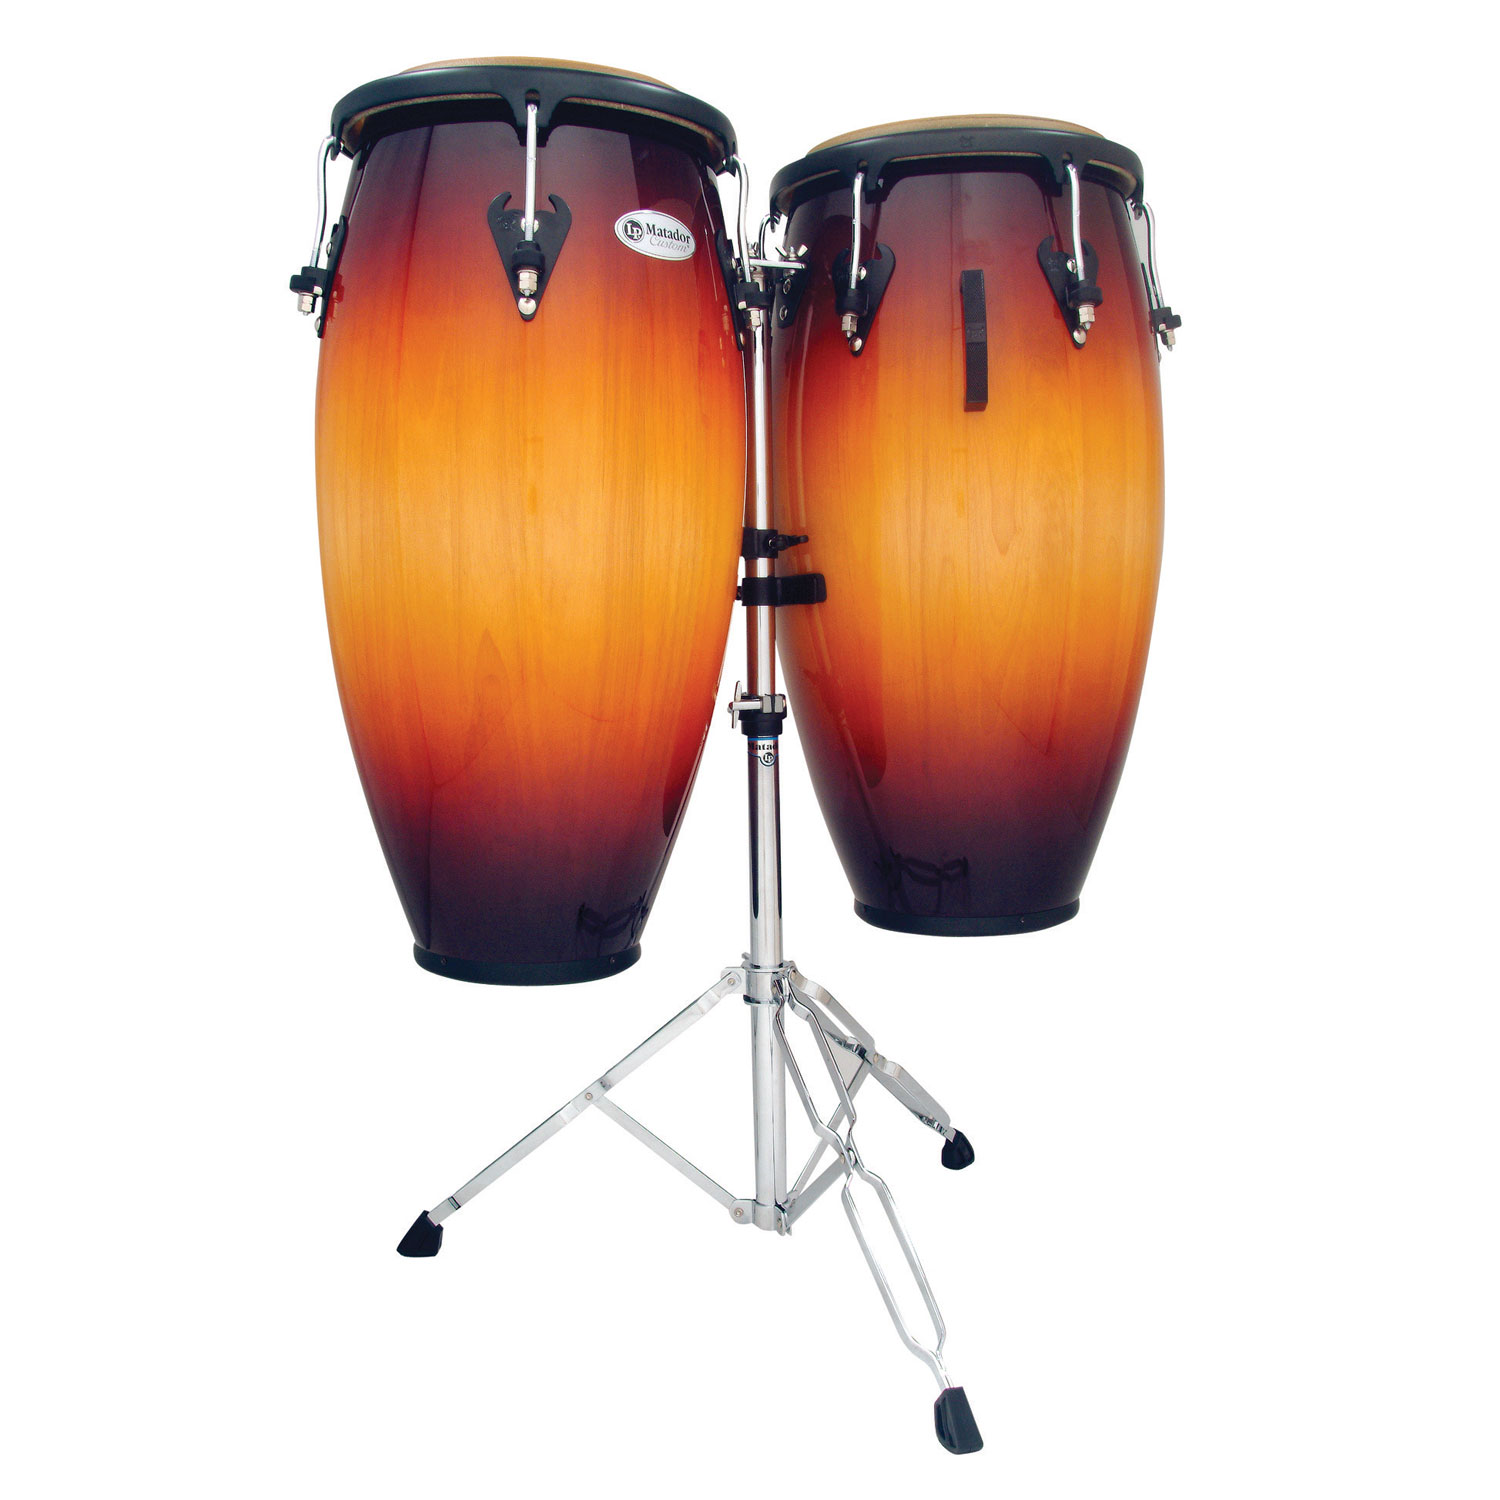 "LP 11"" & 11.75"" Matador Custom Wood Conga Set in Vintage Sunburst with Stand"